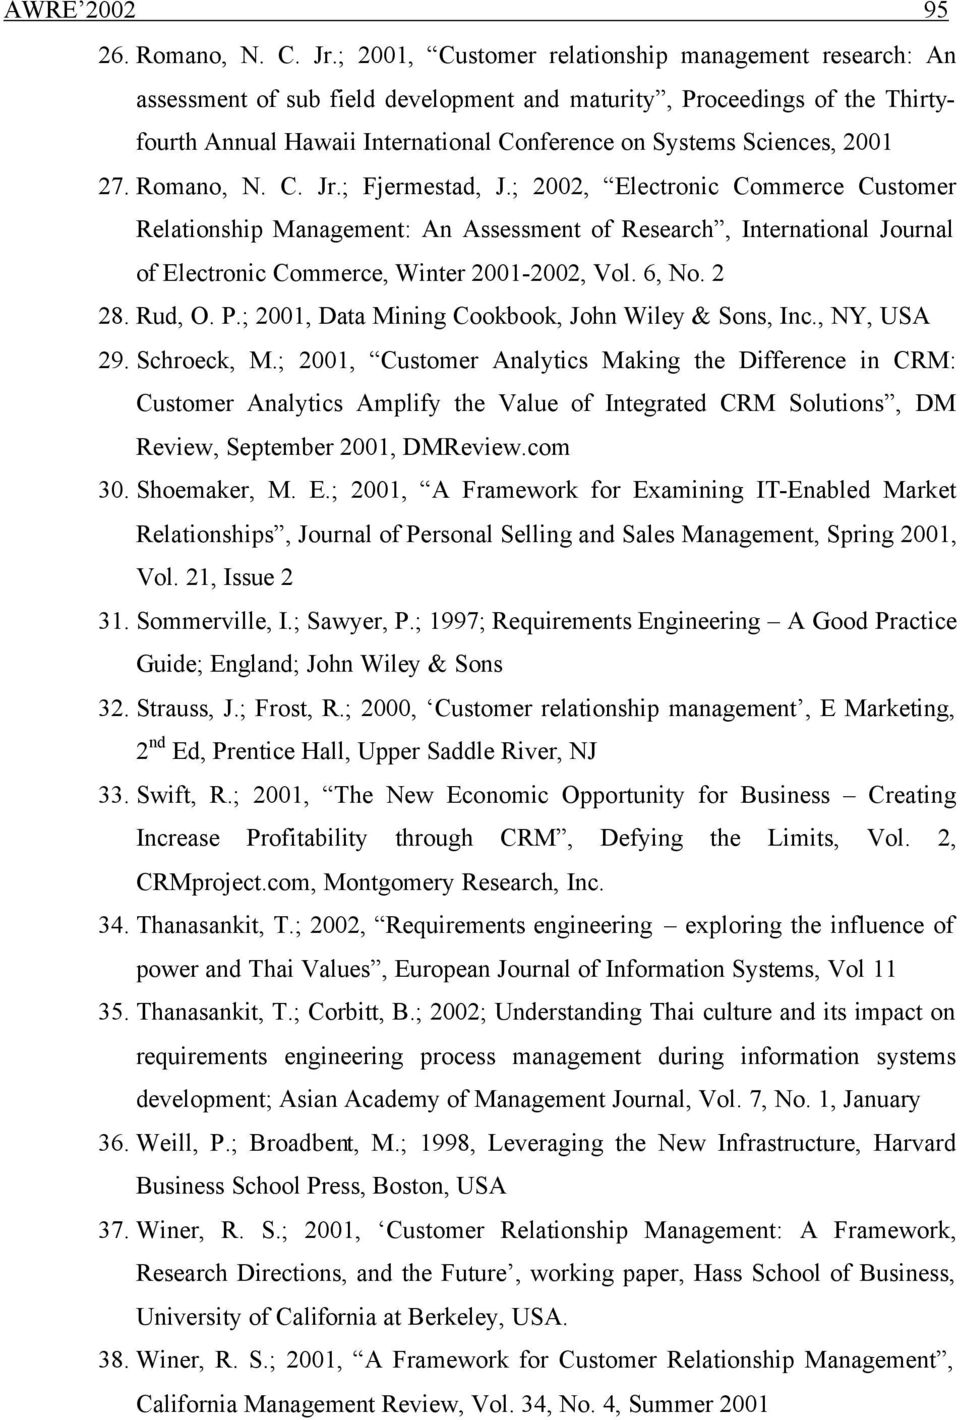 2001 27. Romano, N. C. Jr.; Fjermestad, J.; 2002, Electronic Commerce Customer Relationship Management: An Assessment of Research, International Journal of Electronic Commerce, Winter 2001-2002, Vol.